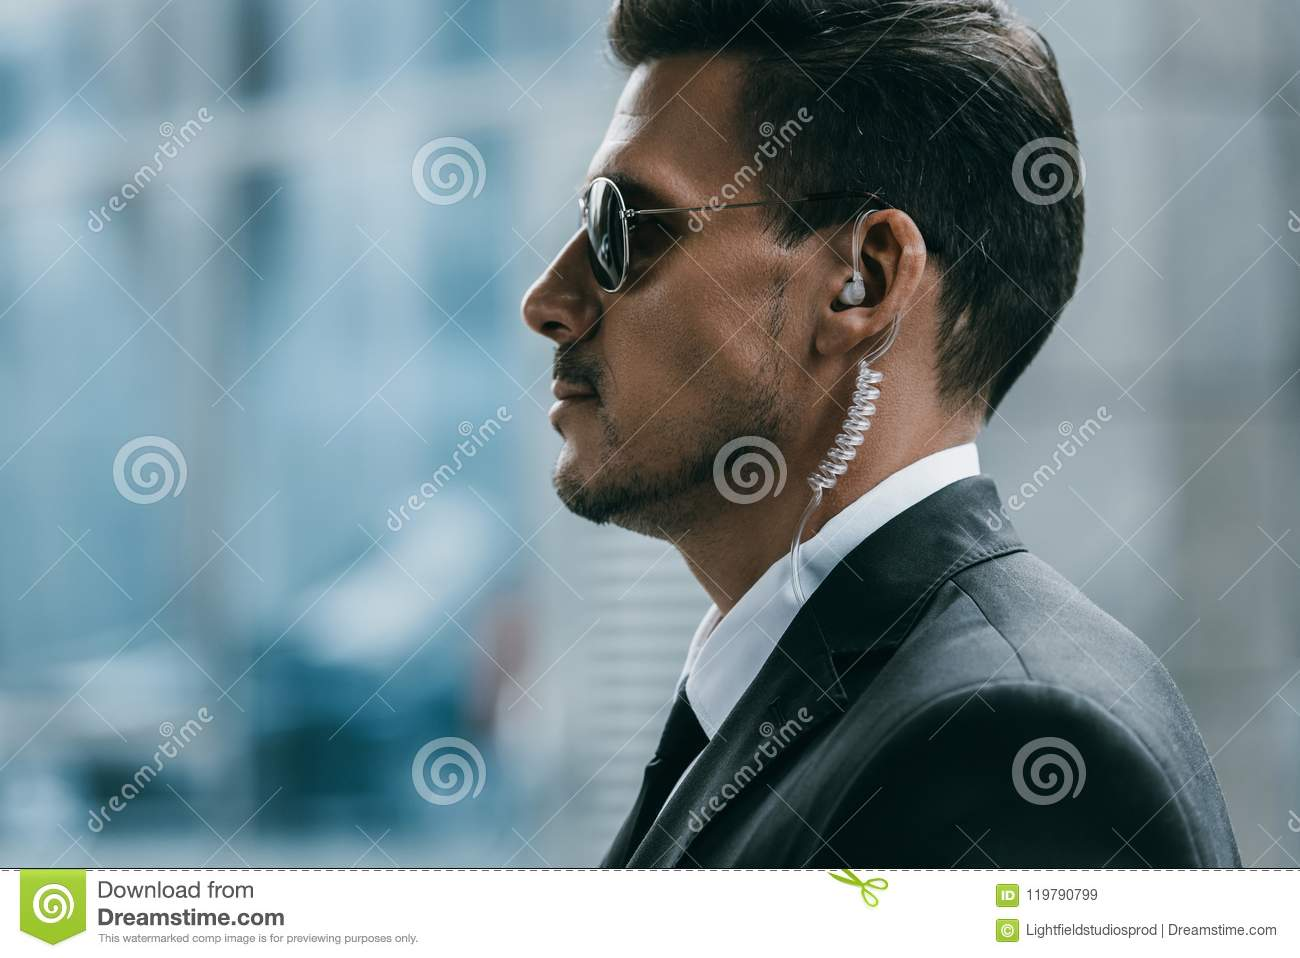 profile of handsome security guard with sunglasses